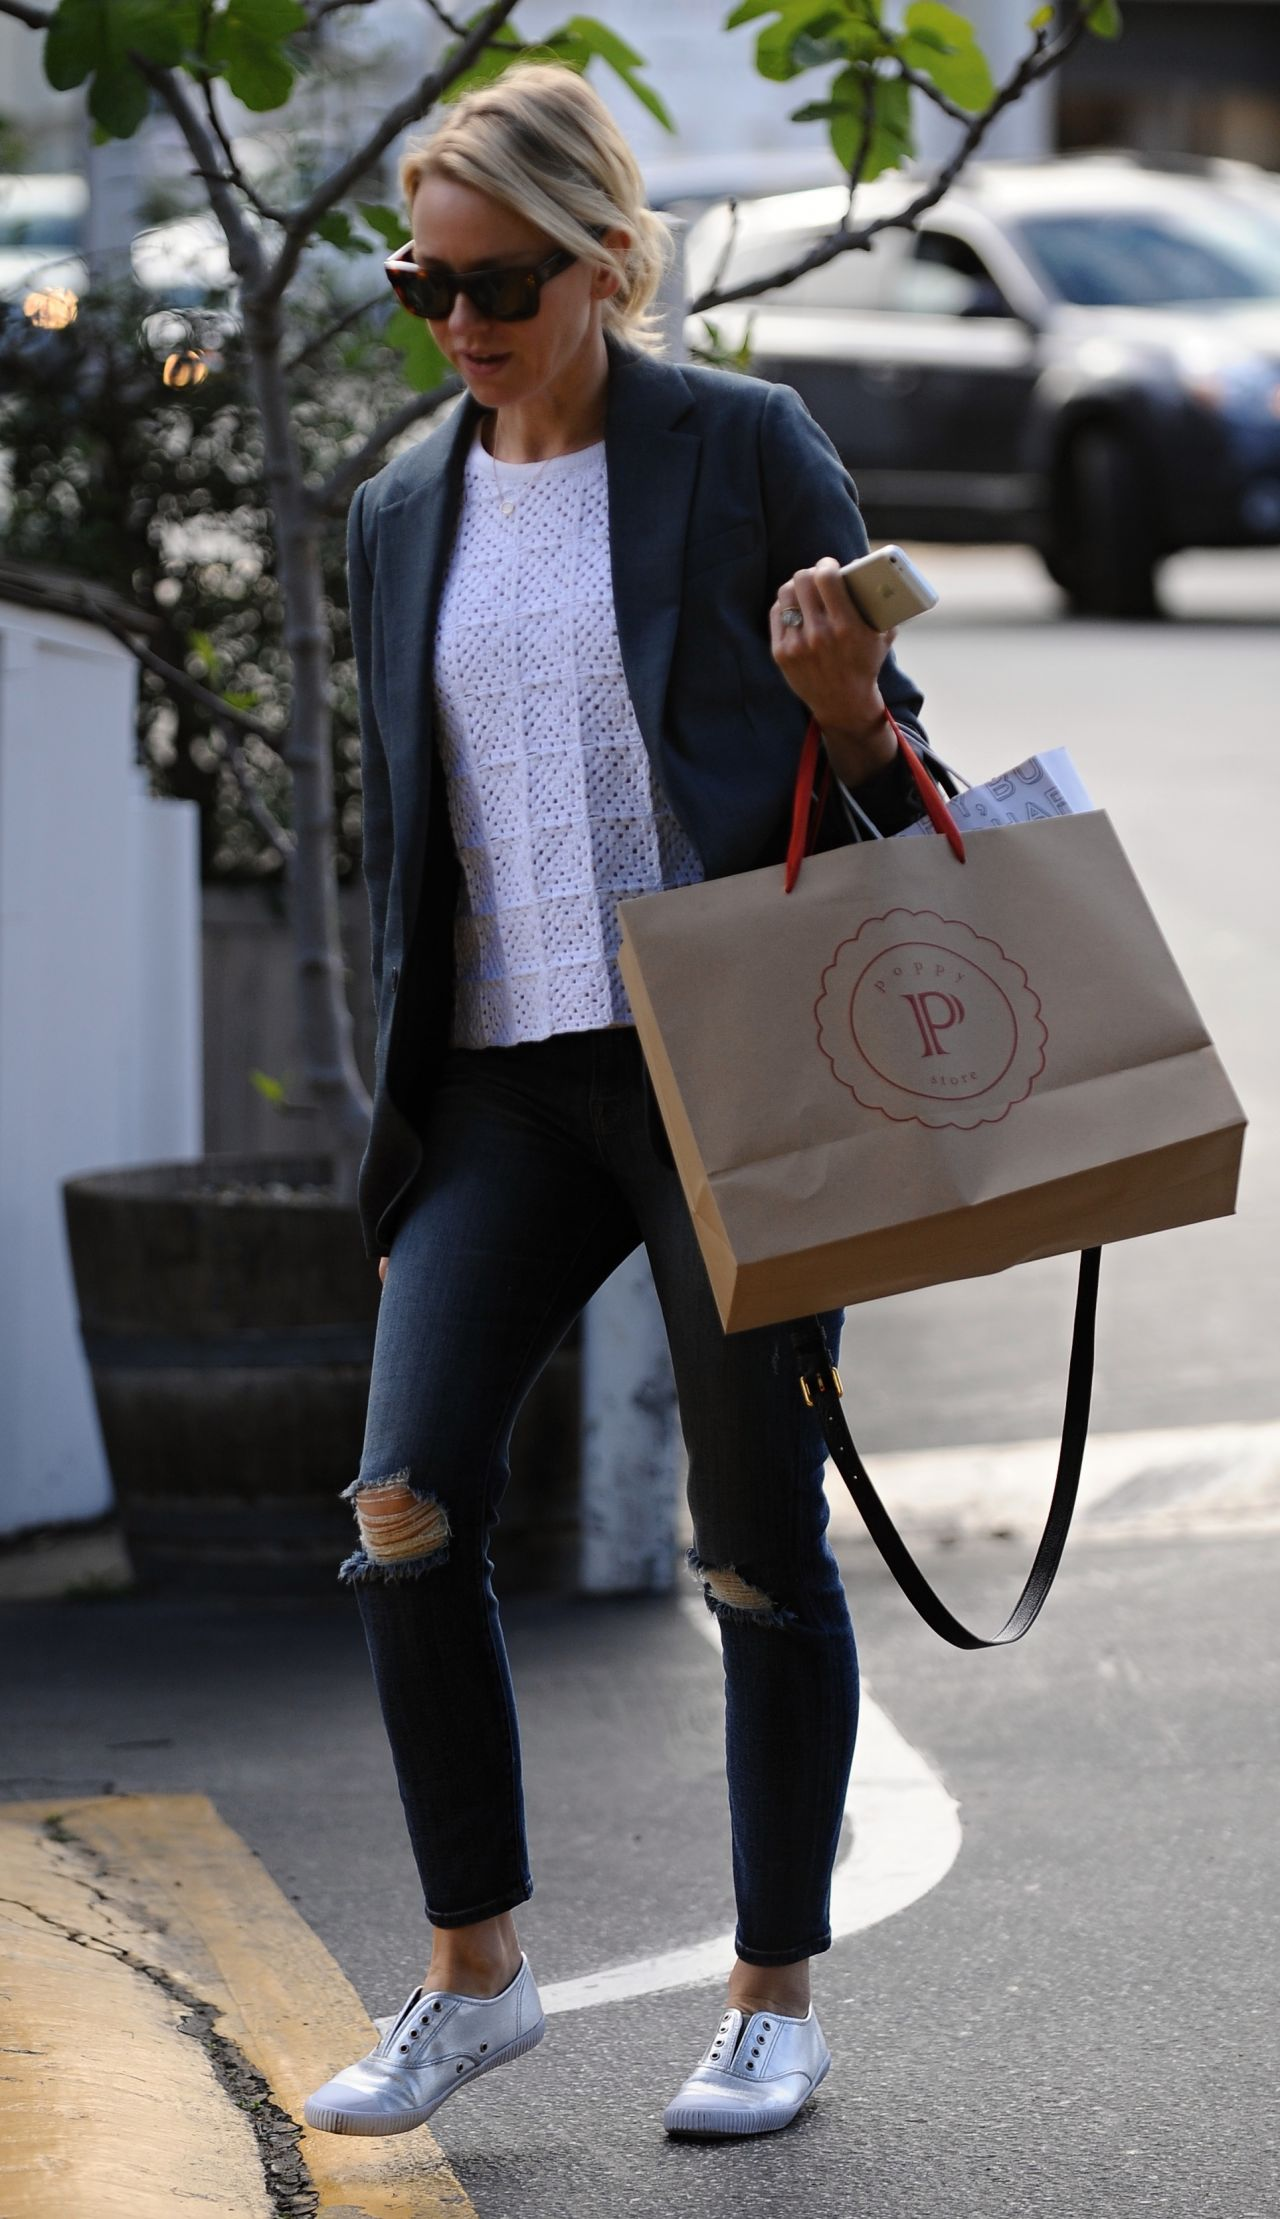 Watts in Ripped Jeans - Shopping at Brentwood Country Mart